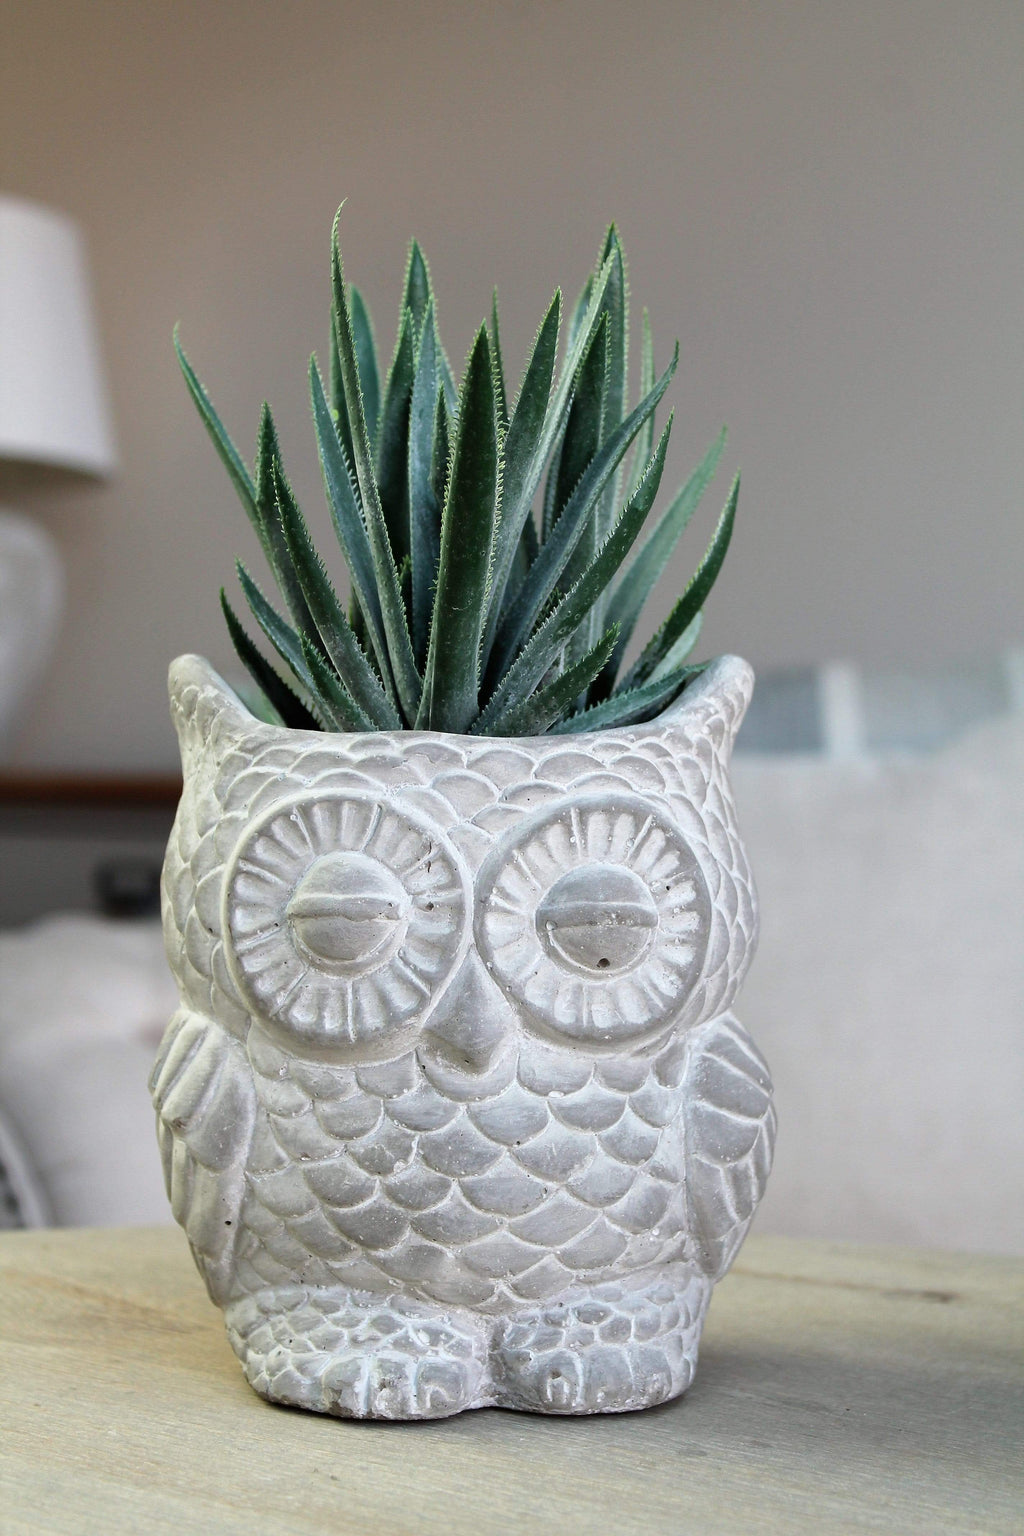 Decorative Owl With Green Artificial Plant - SAK Home